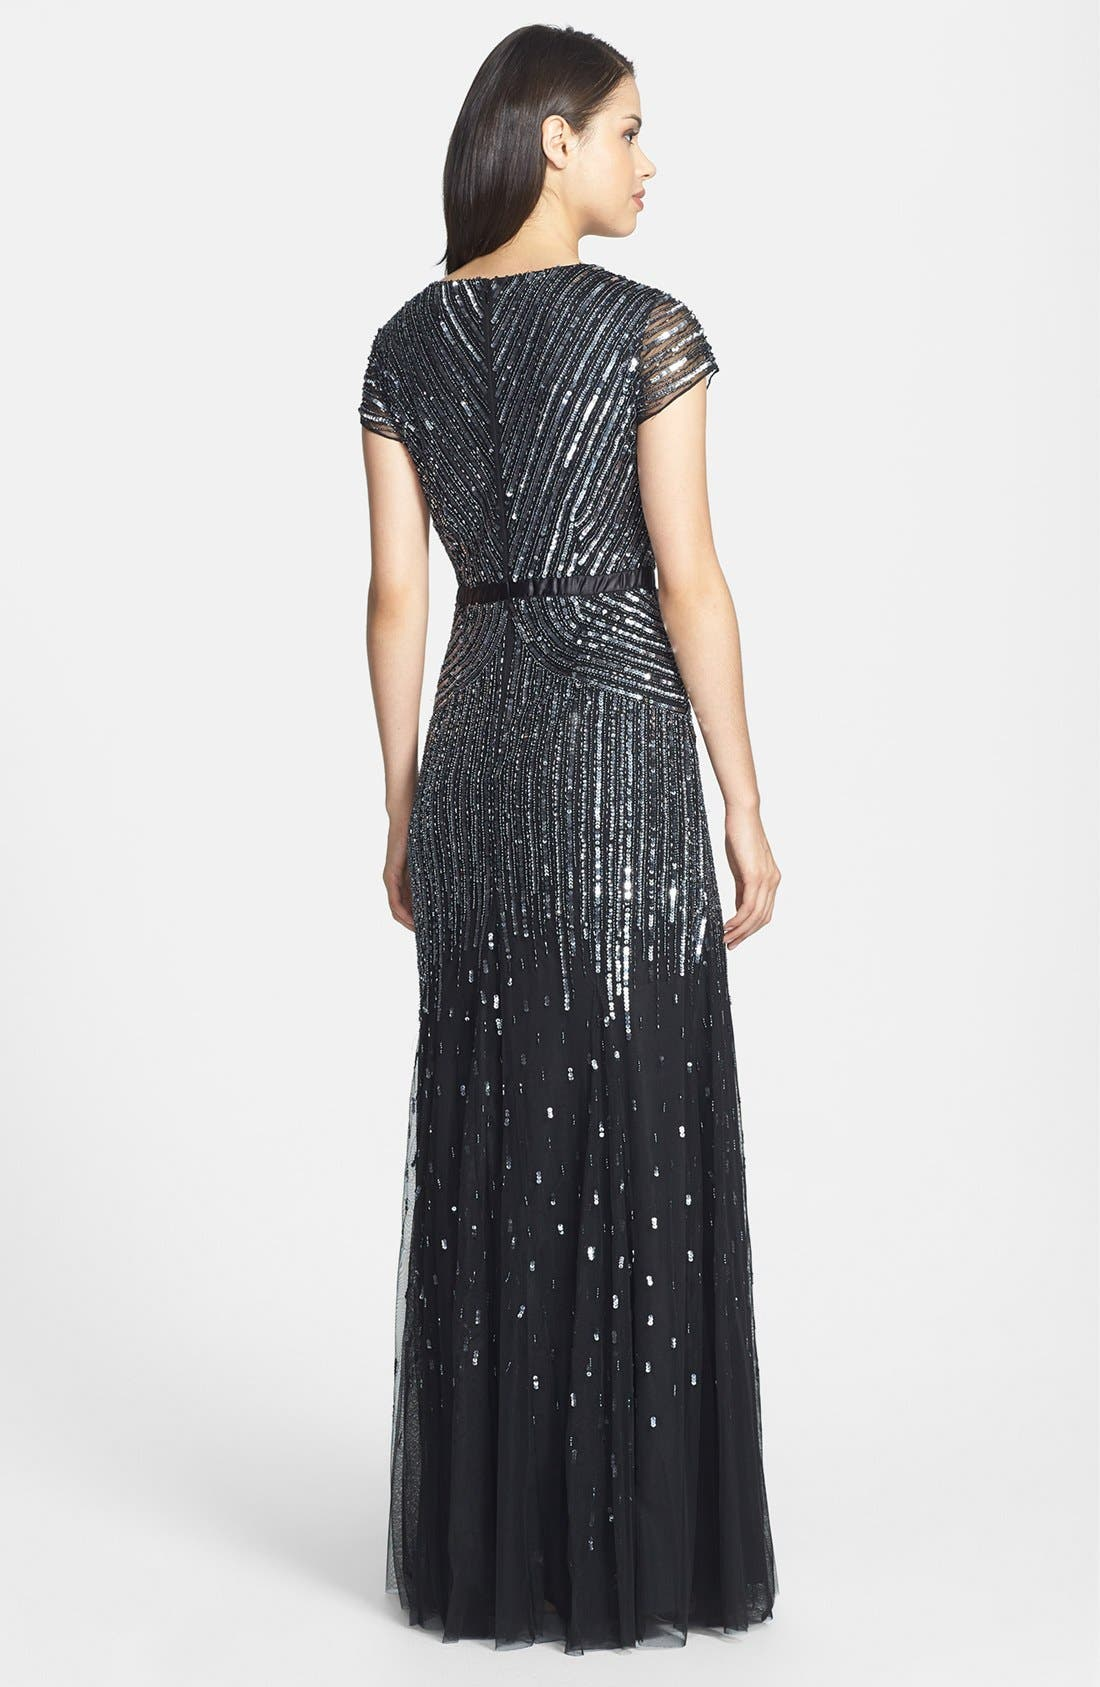 ADRIANNA PAPELL,                             Embellished Mesh Gown,                             Alternate thumbnail 2, color,                             001